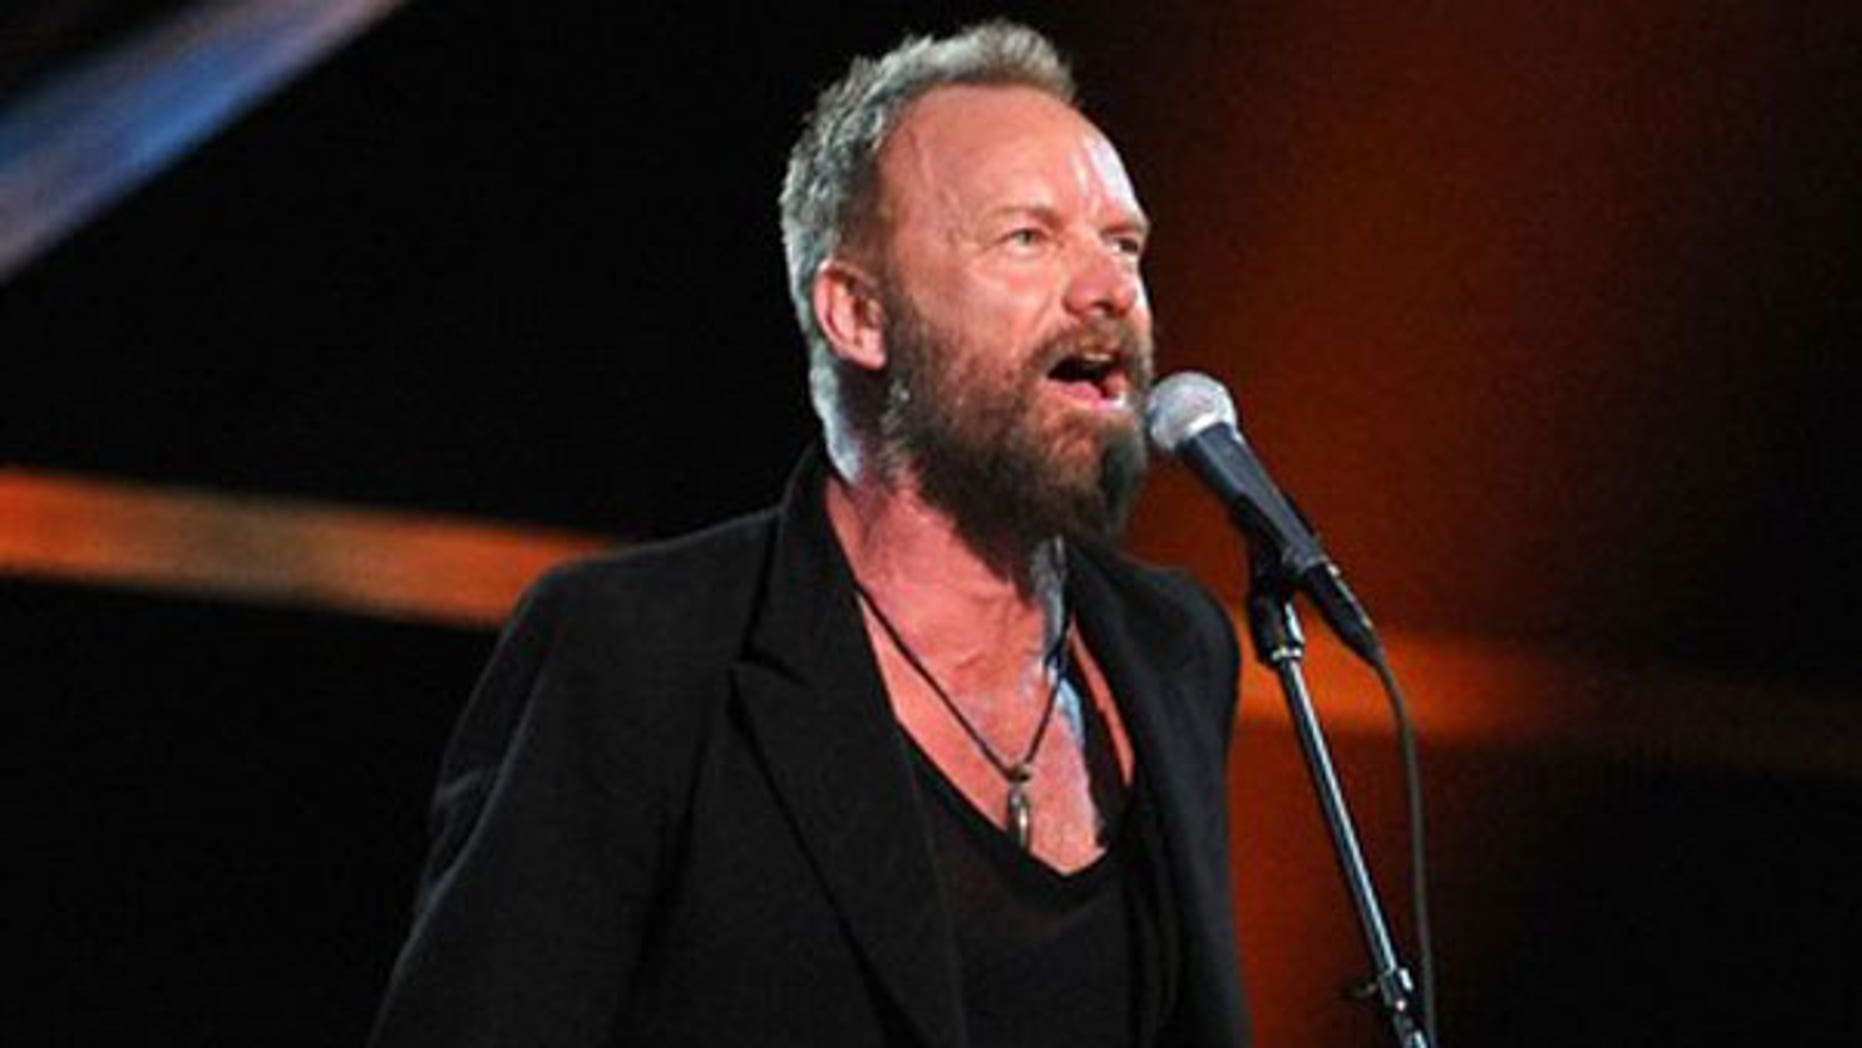 Rocker Sting is seen at a New York City performance. (AFP)